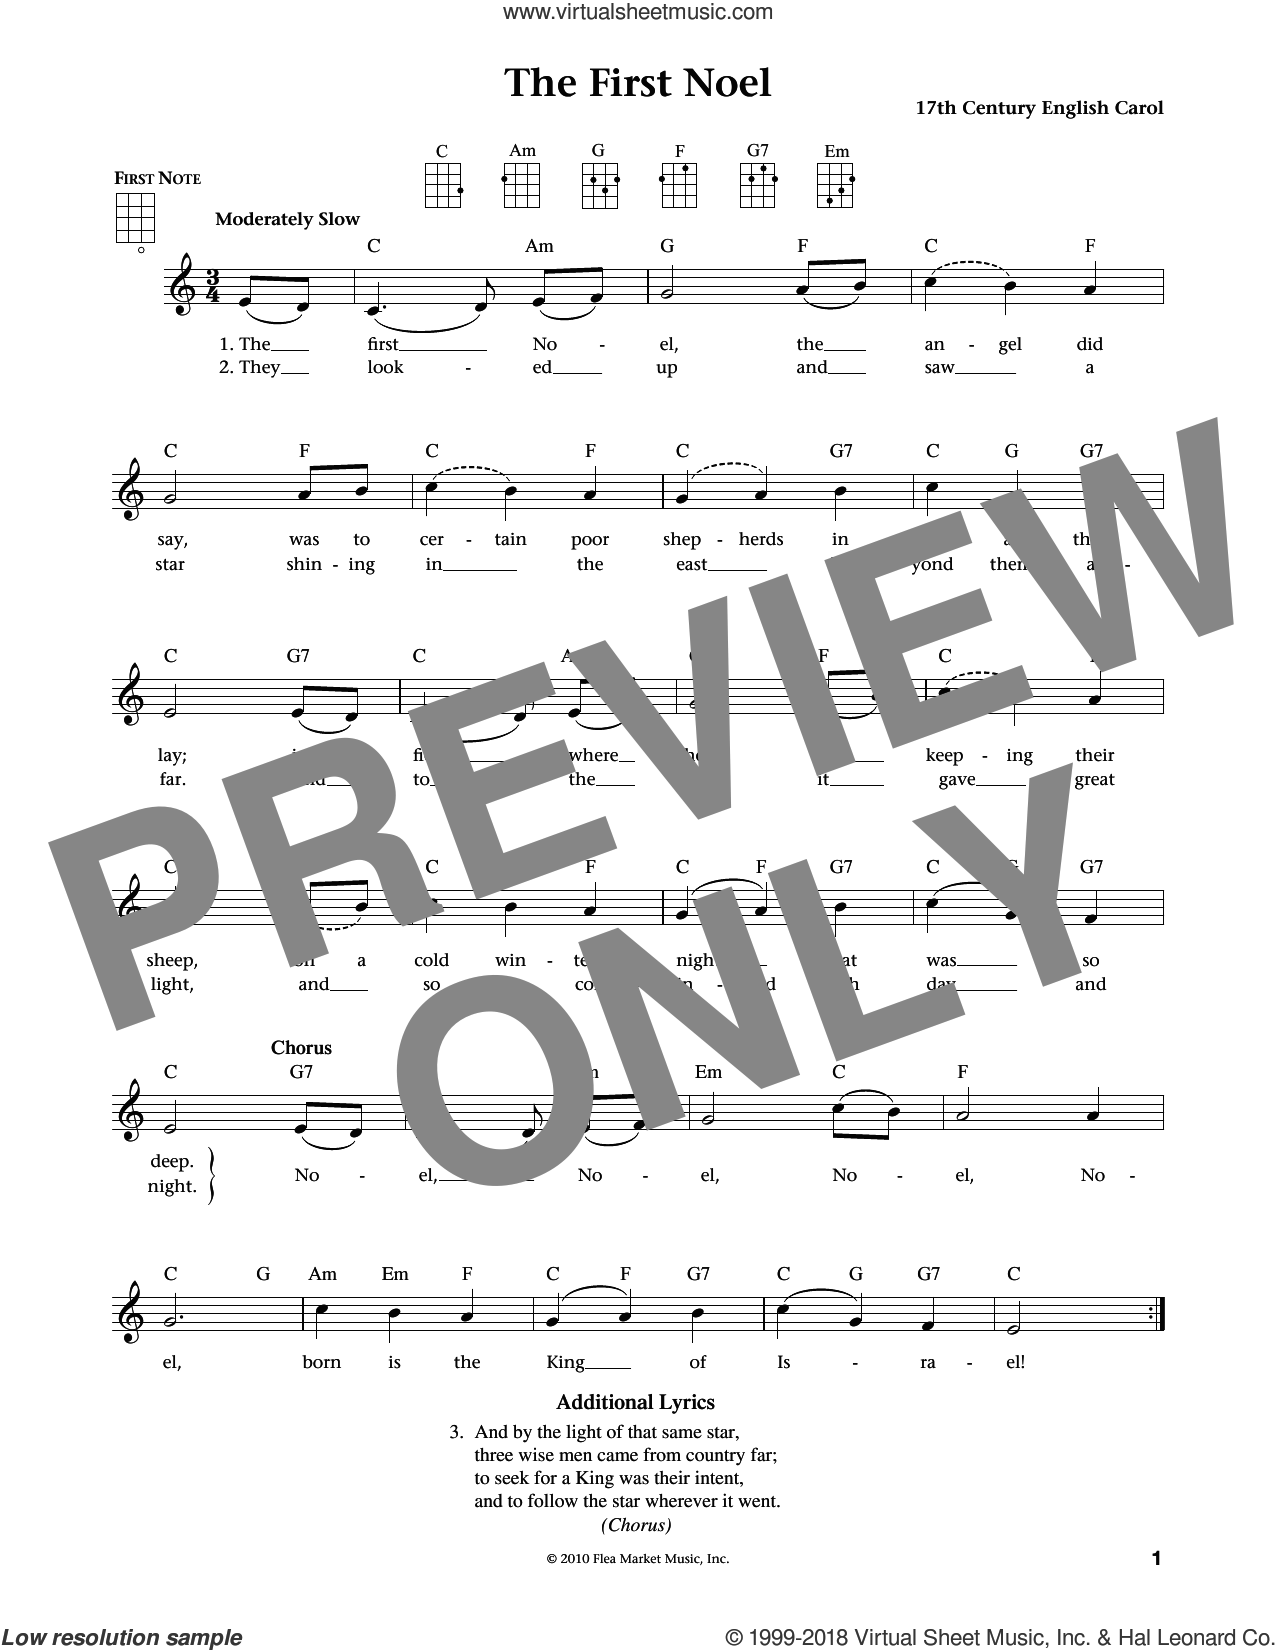 The First Noel sheet music for ukulele by Anonymous, Jim Beloff, Liz Beloff and Miscellaneous, intermediate skill level